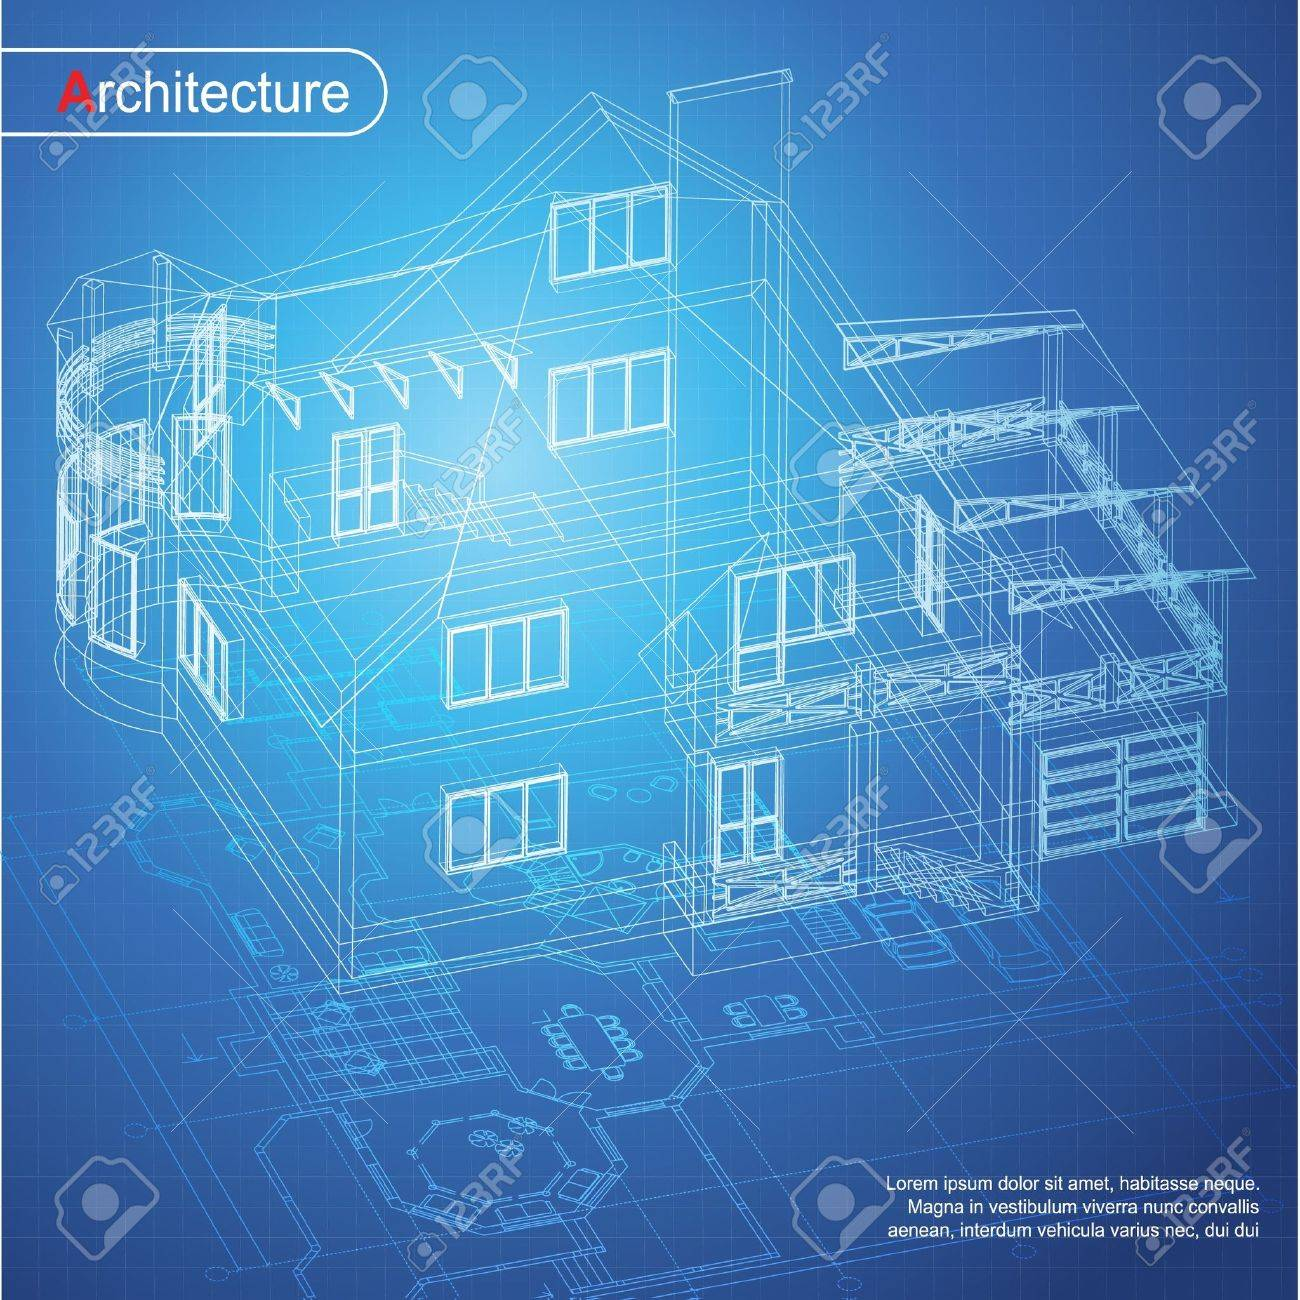 Urban blueprint architectural background part of architectural urban blueprint architectural background part of architectural project architectural plan technical project drawing malvernweather Image collections